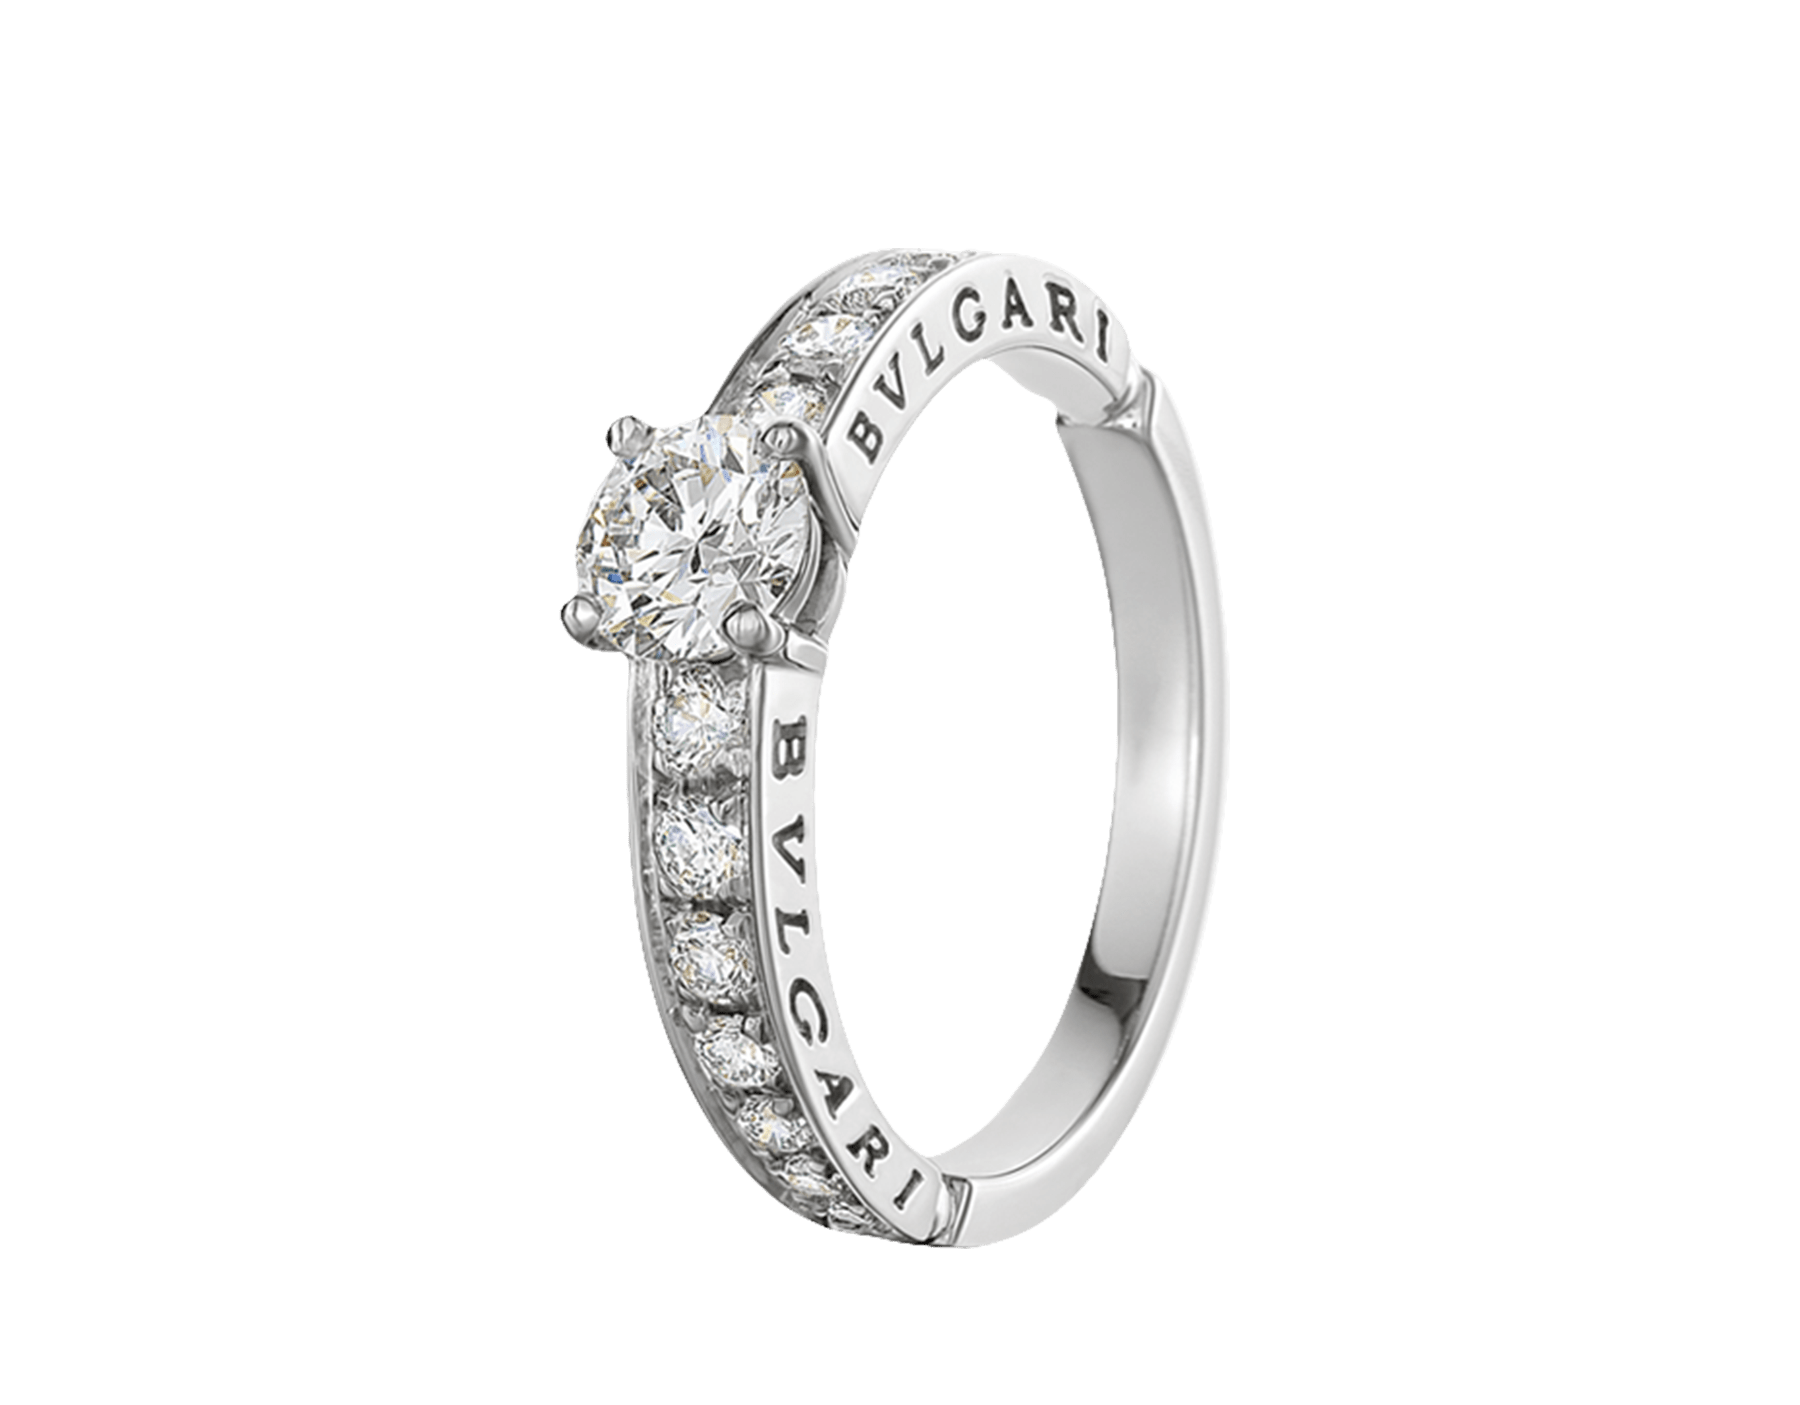 Dedicata a Venezia: 1503 solitaire ring in platinum with a round brilliant-cut diamond, pavé diamonds and engraved logo. Named after the year in which the first engagement ring was offered in Venice. 343993 image 1